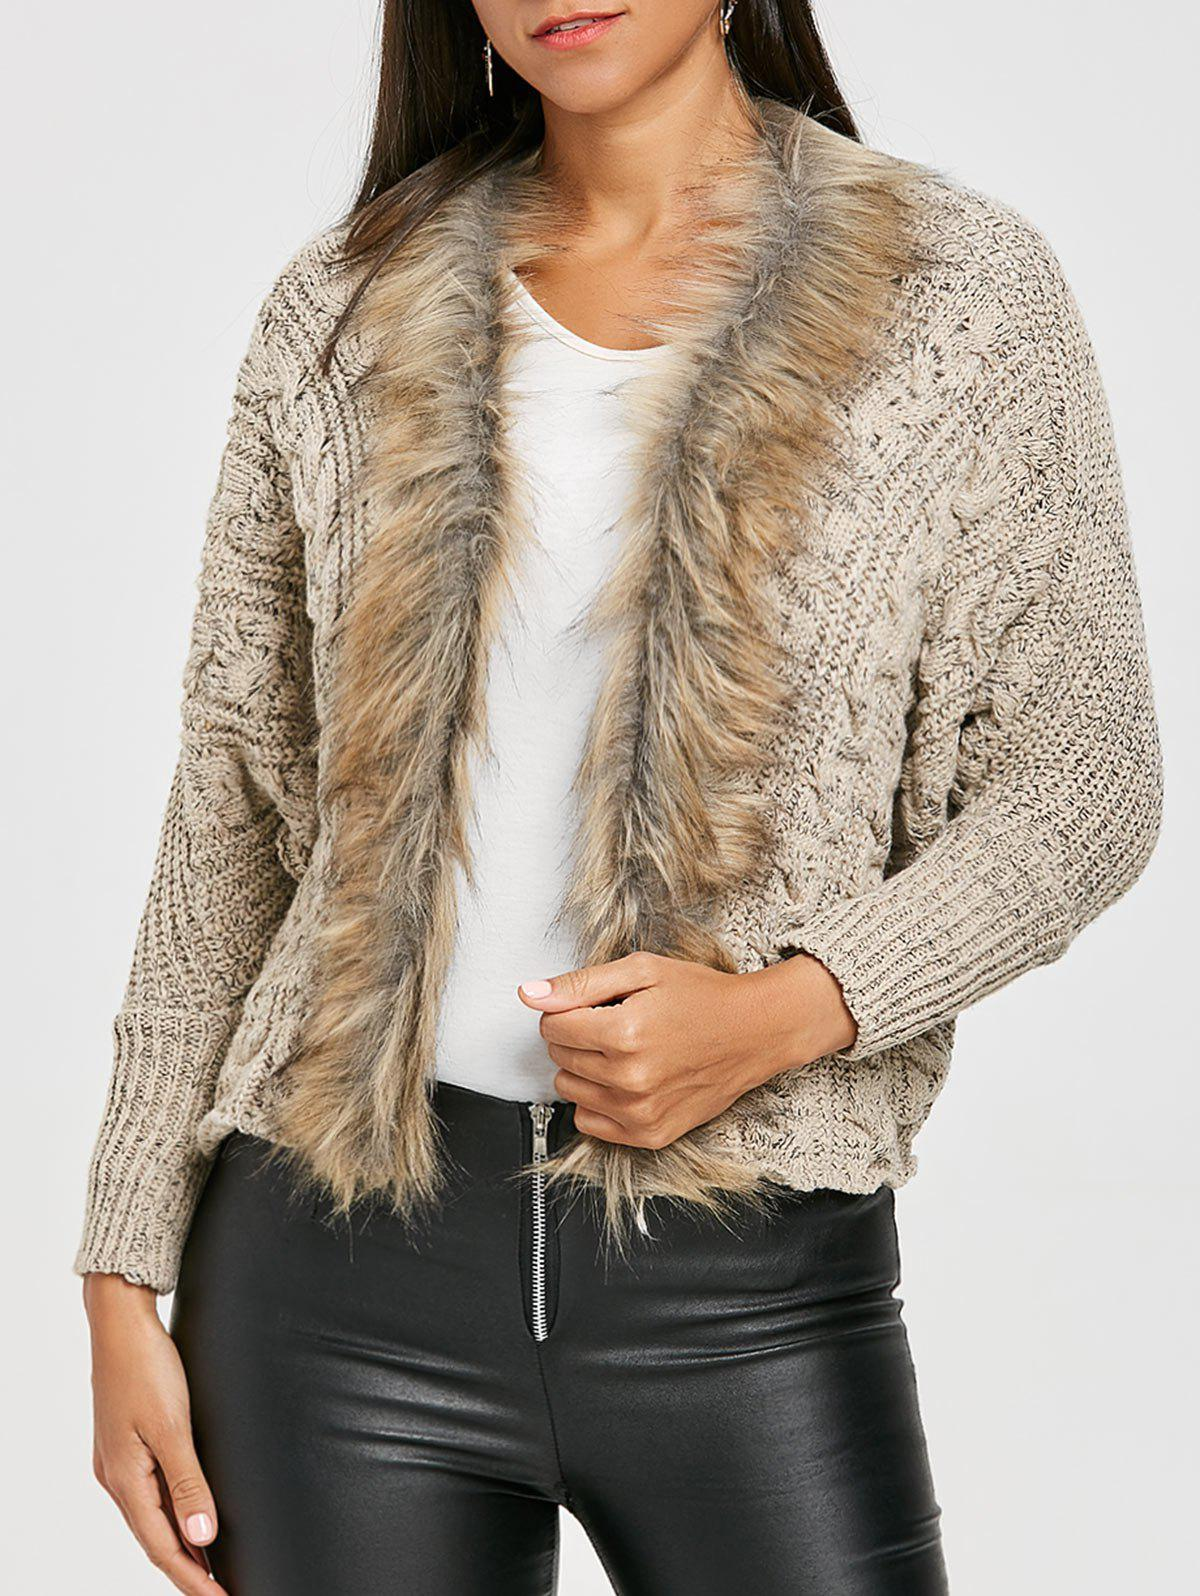 Faux Fur Trimmed Batwing Sleeve Cardigan - BEIGE ONE SIZE